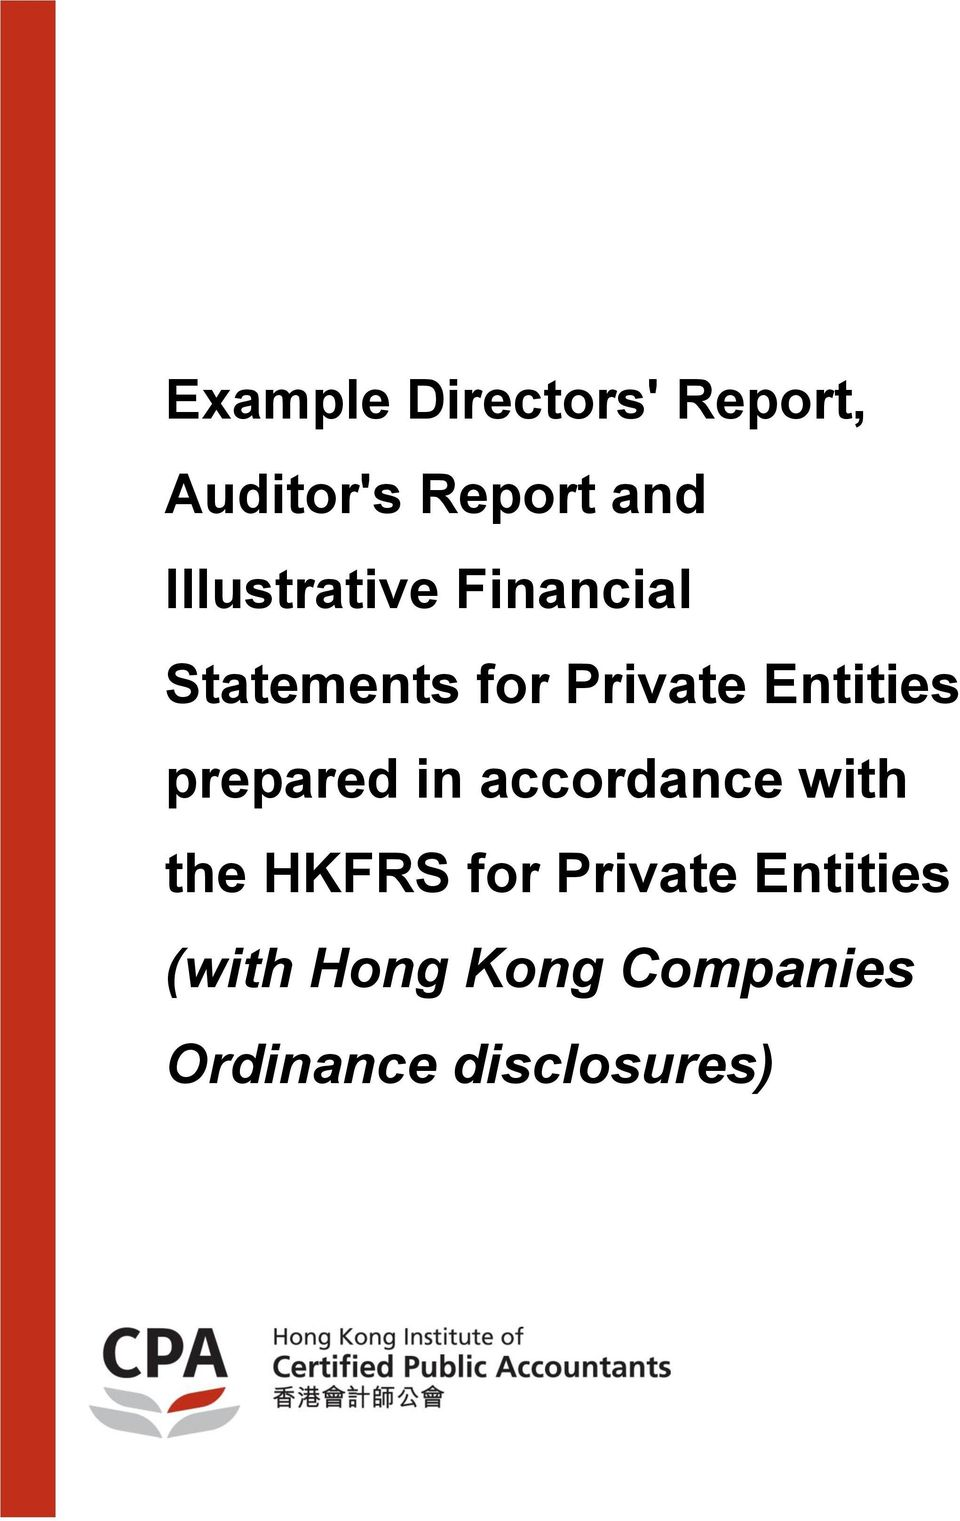 Entities prepared in accordance with the HKFRS for